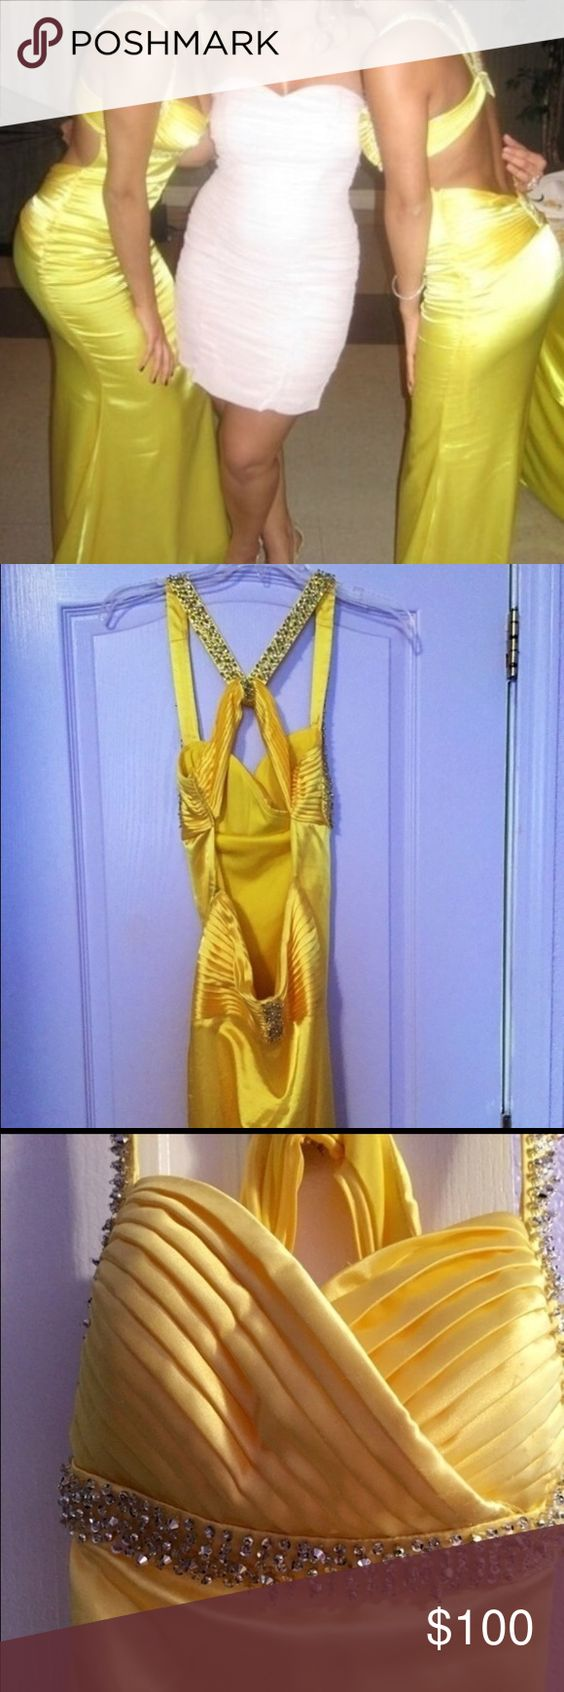 Long floor length yellow formal dress! Size 3/4 Yellow formal dress. Long floor length. Size 3/4. Perfect for any special occasion. Only worn one time in a wedding. Open back detail and form fitting! A tiny bit dirty at the bottom, but nothing dry cleaning cannot fix Morgan & Co. Dresses Prom